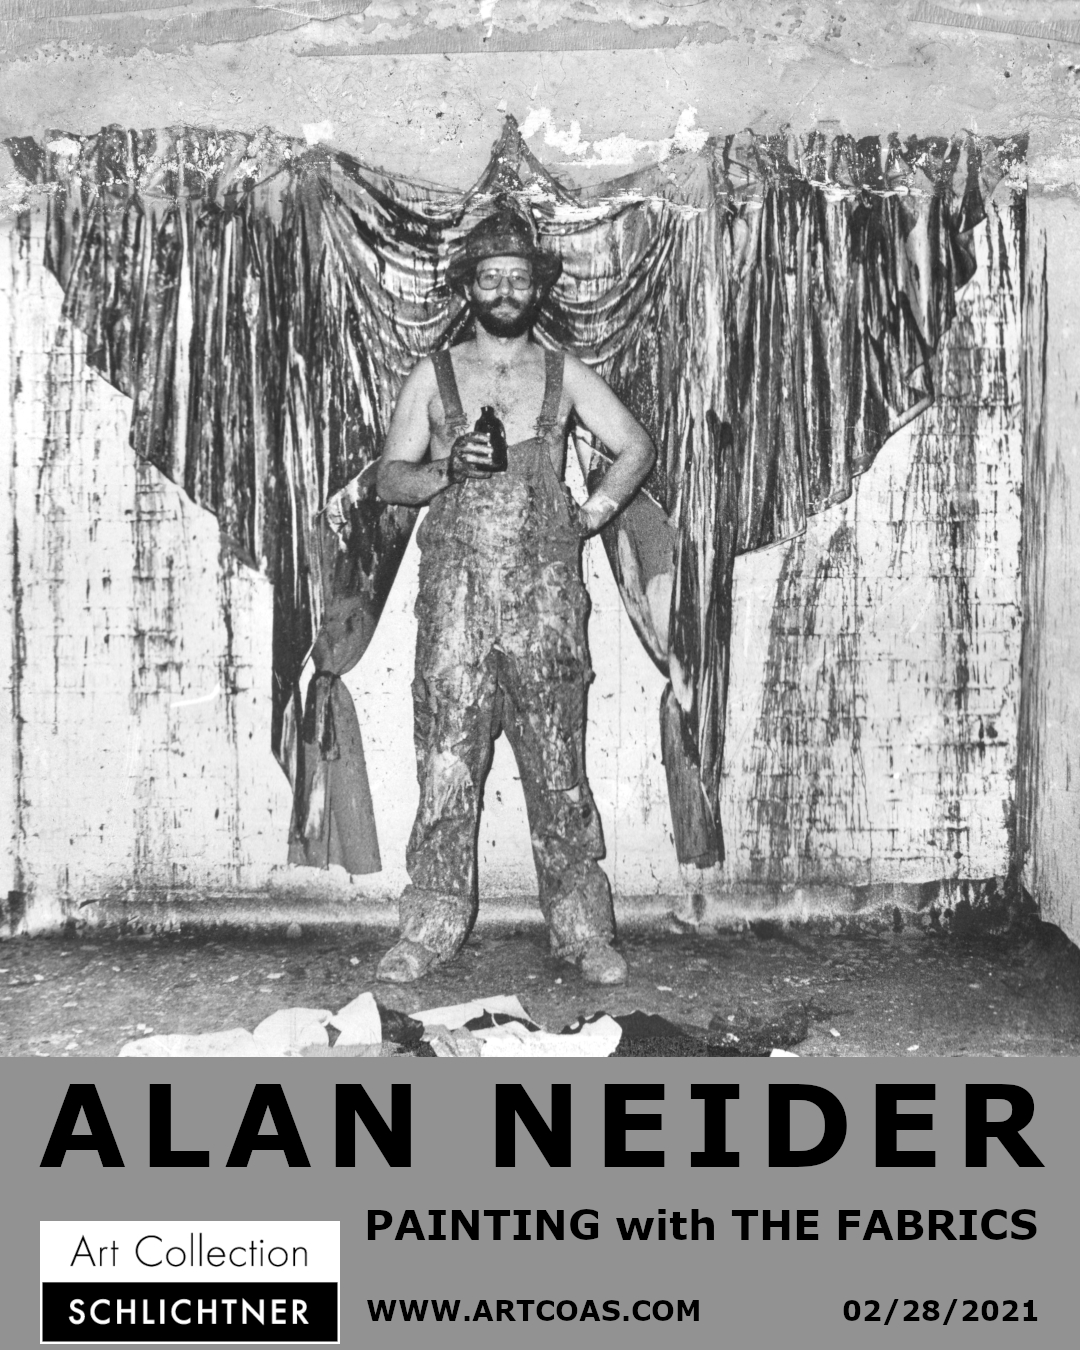 ALAN NEIDER - PAINTING with THE FABRICS - online solo exhibition - 02/28/2021